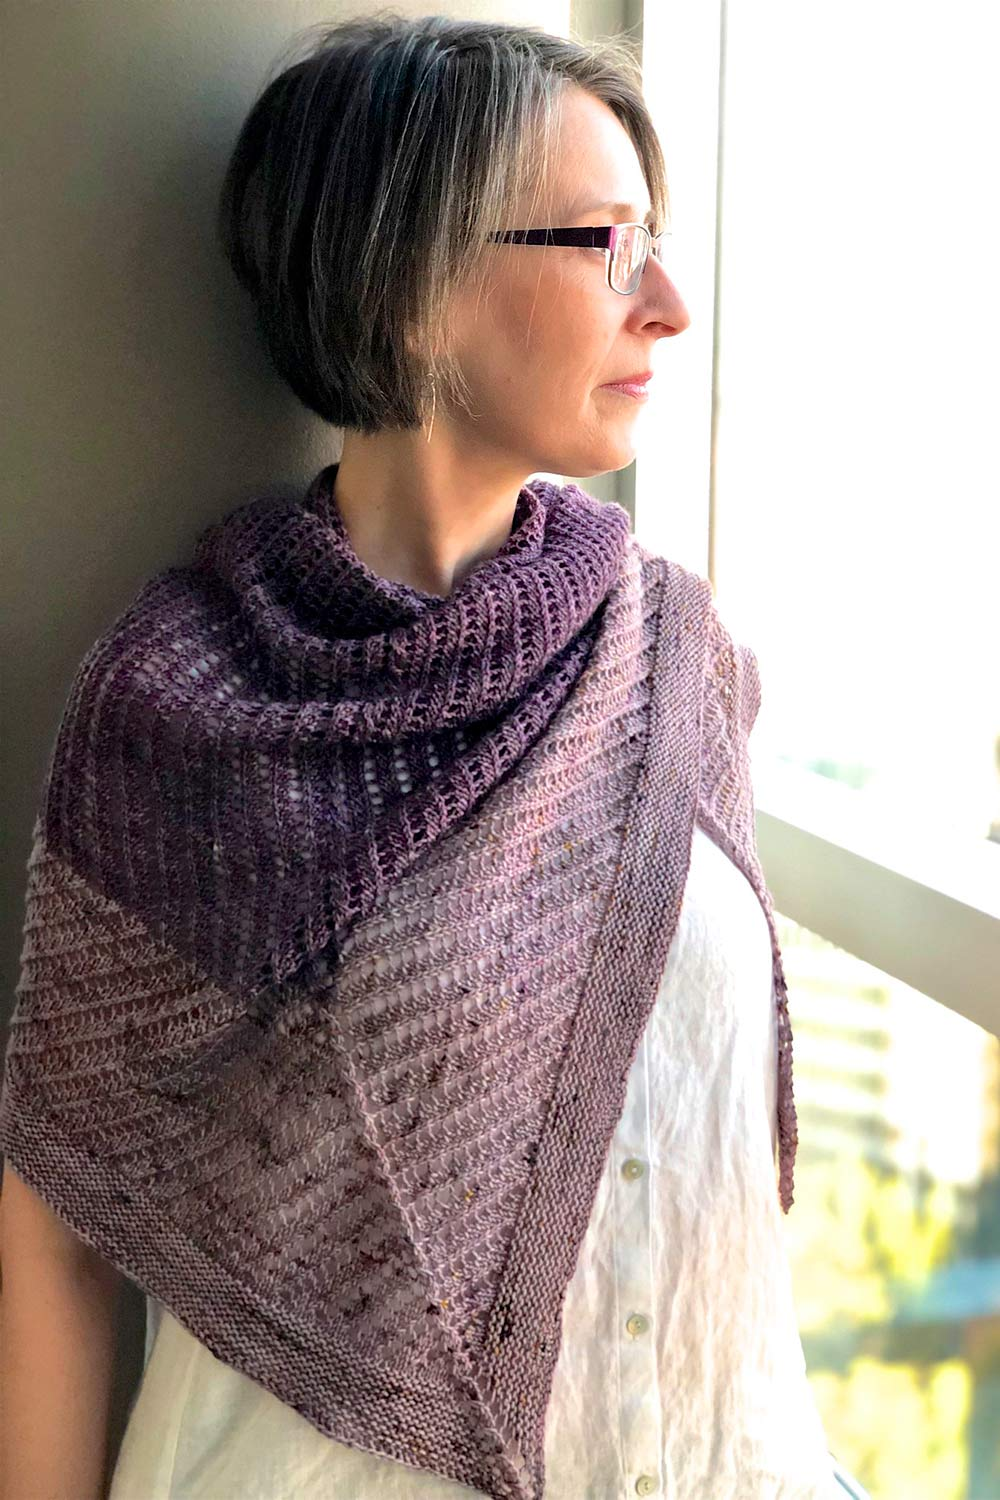 Holli wearing two-tone purple shawl wrapped around her neck.